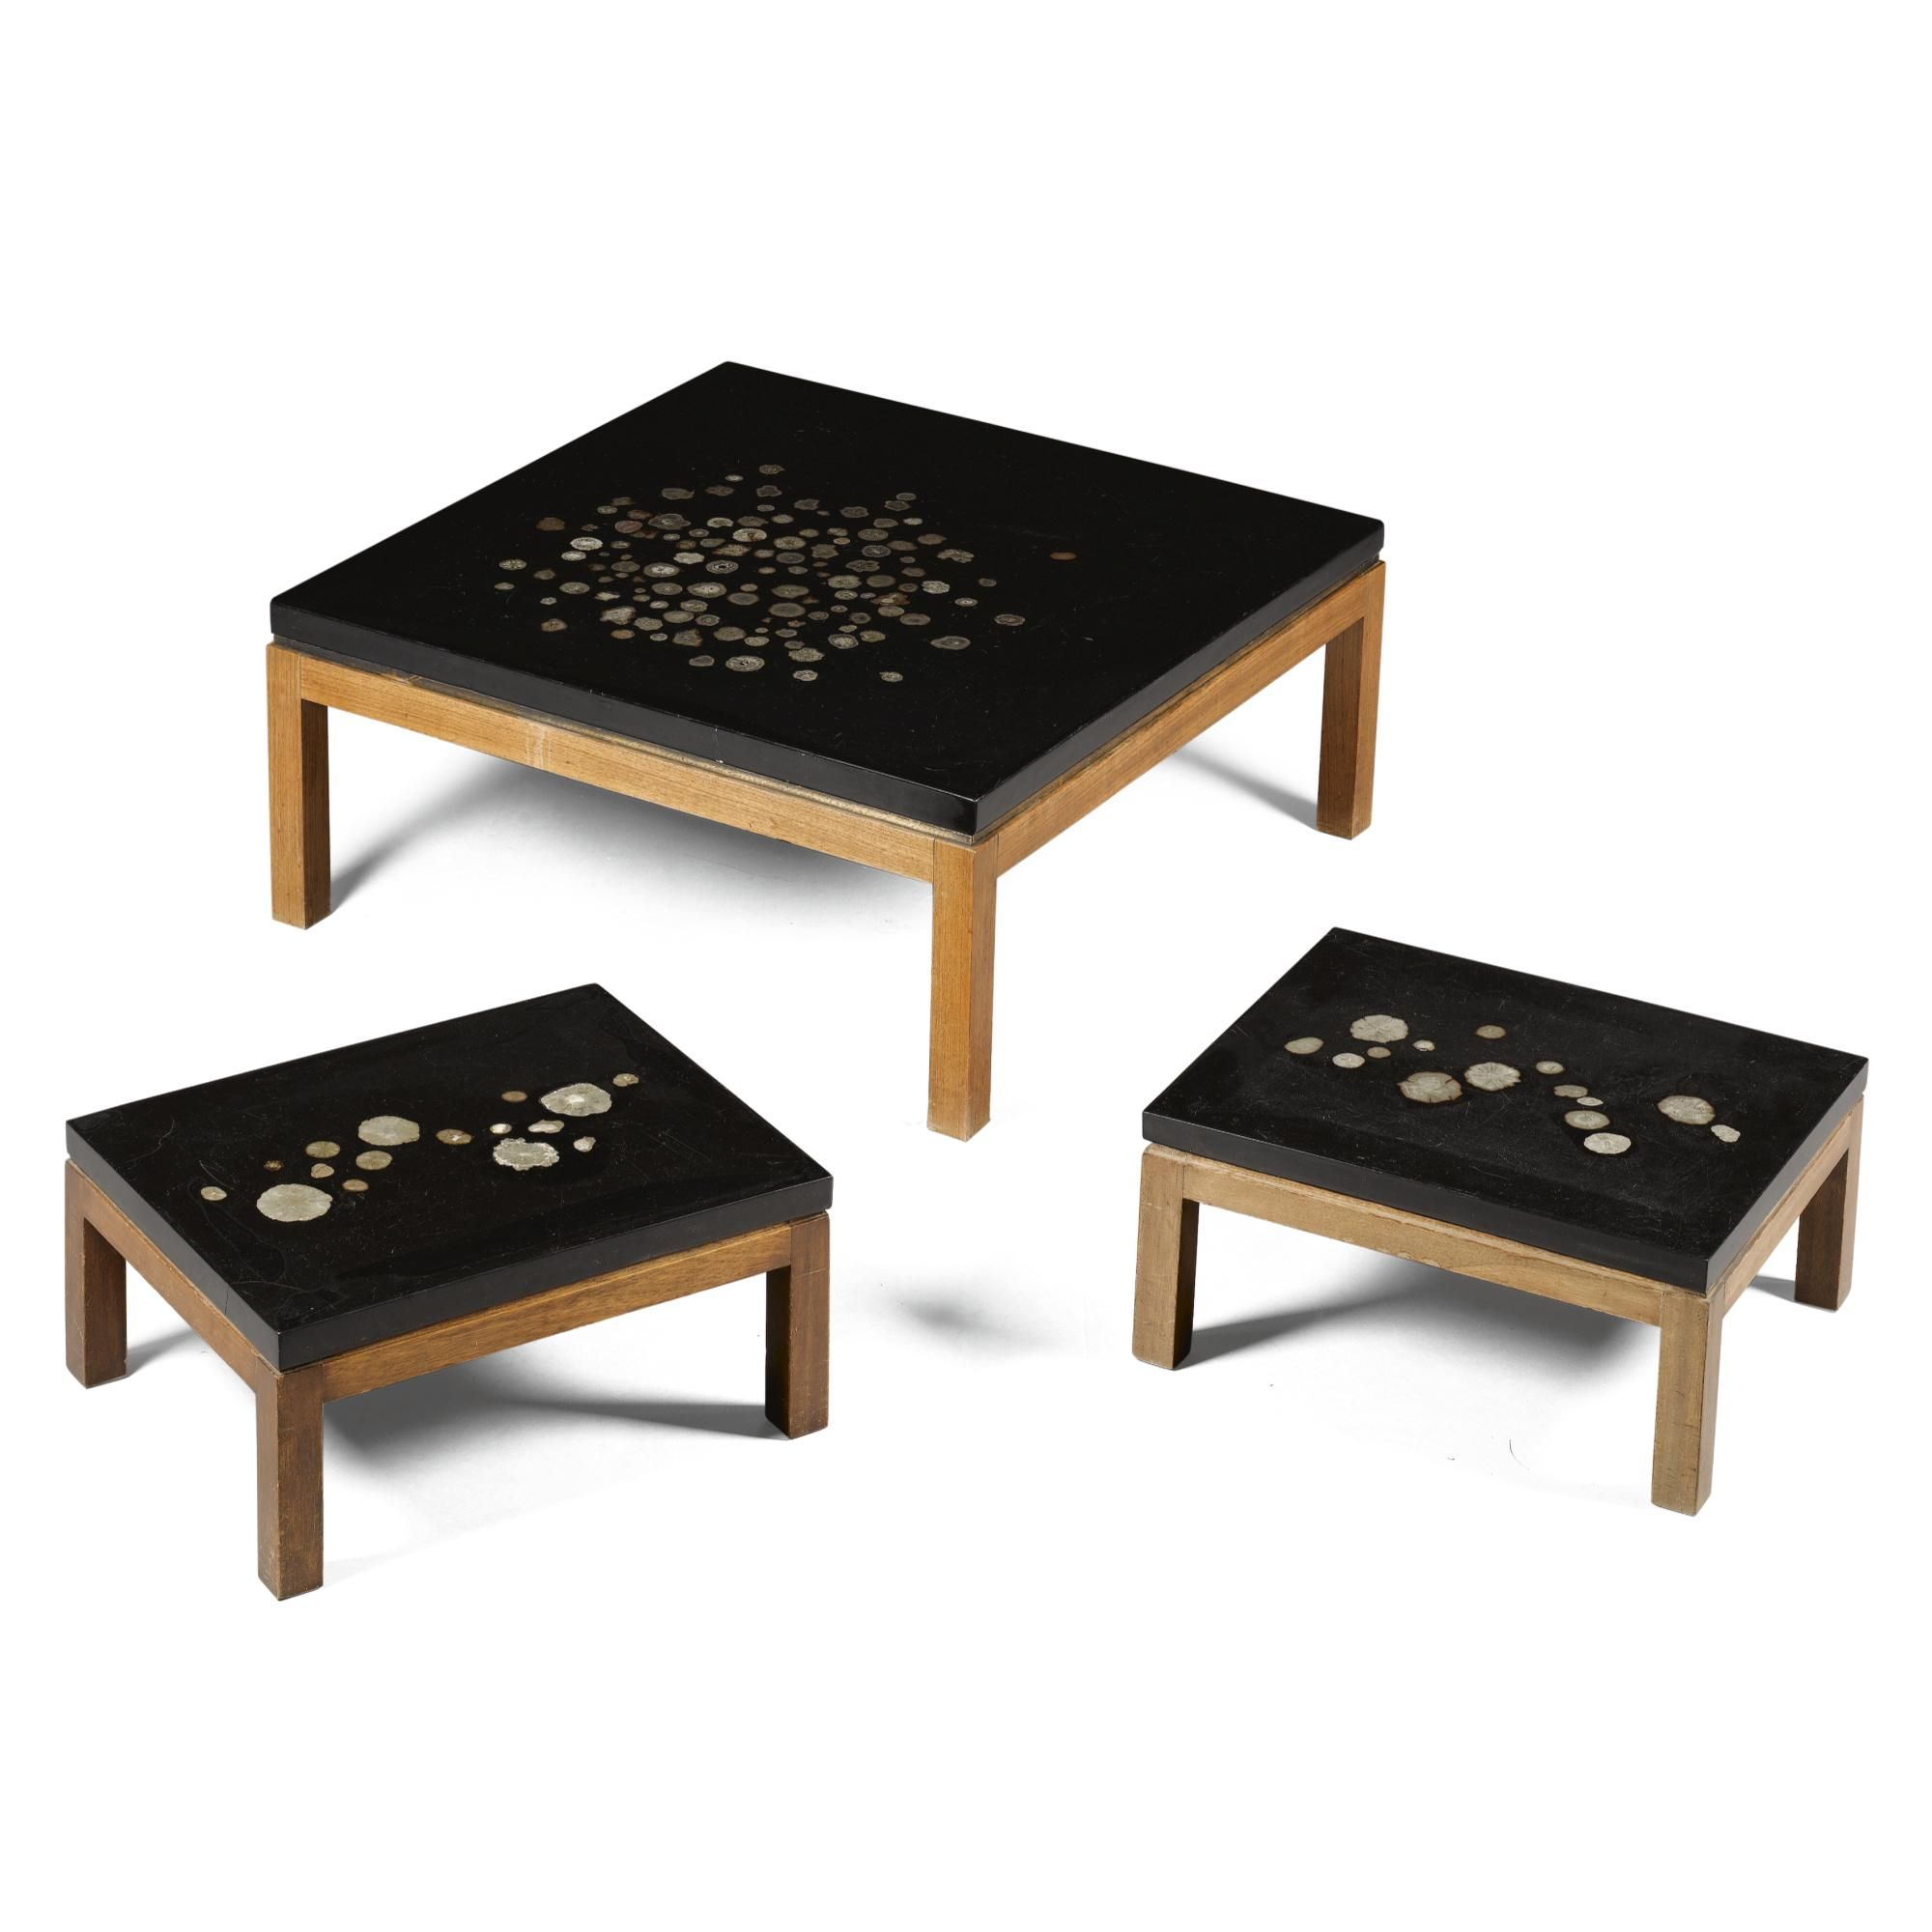 ADO CHALE A RARE SET OF THREE COFFEE TABLES | T A B L E - D E S K ...